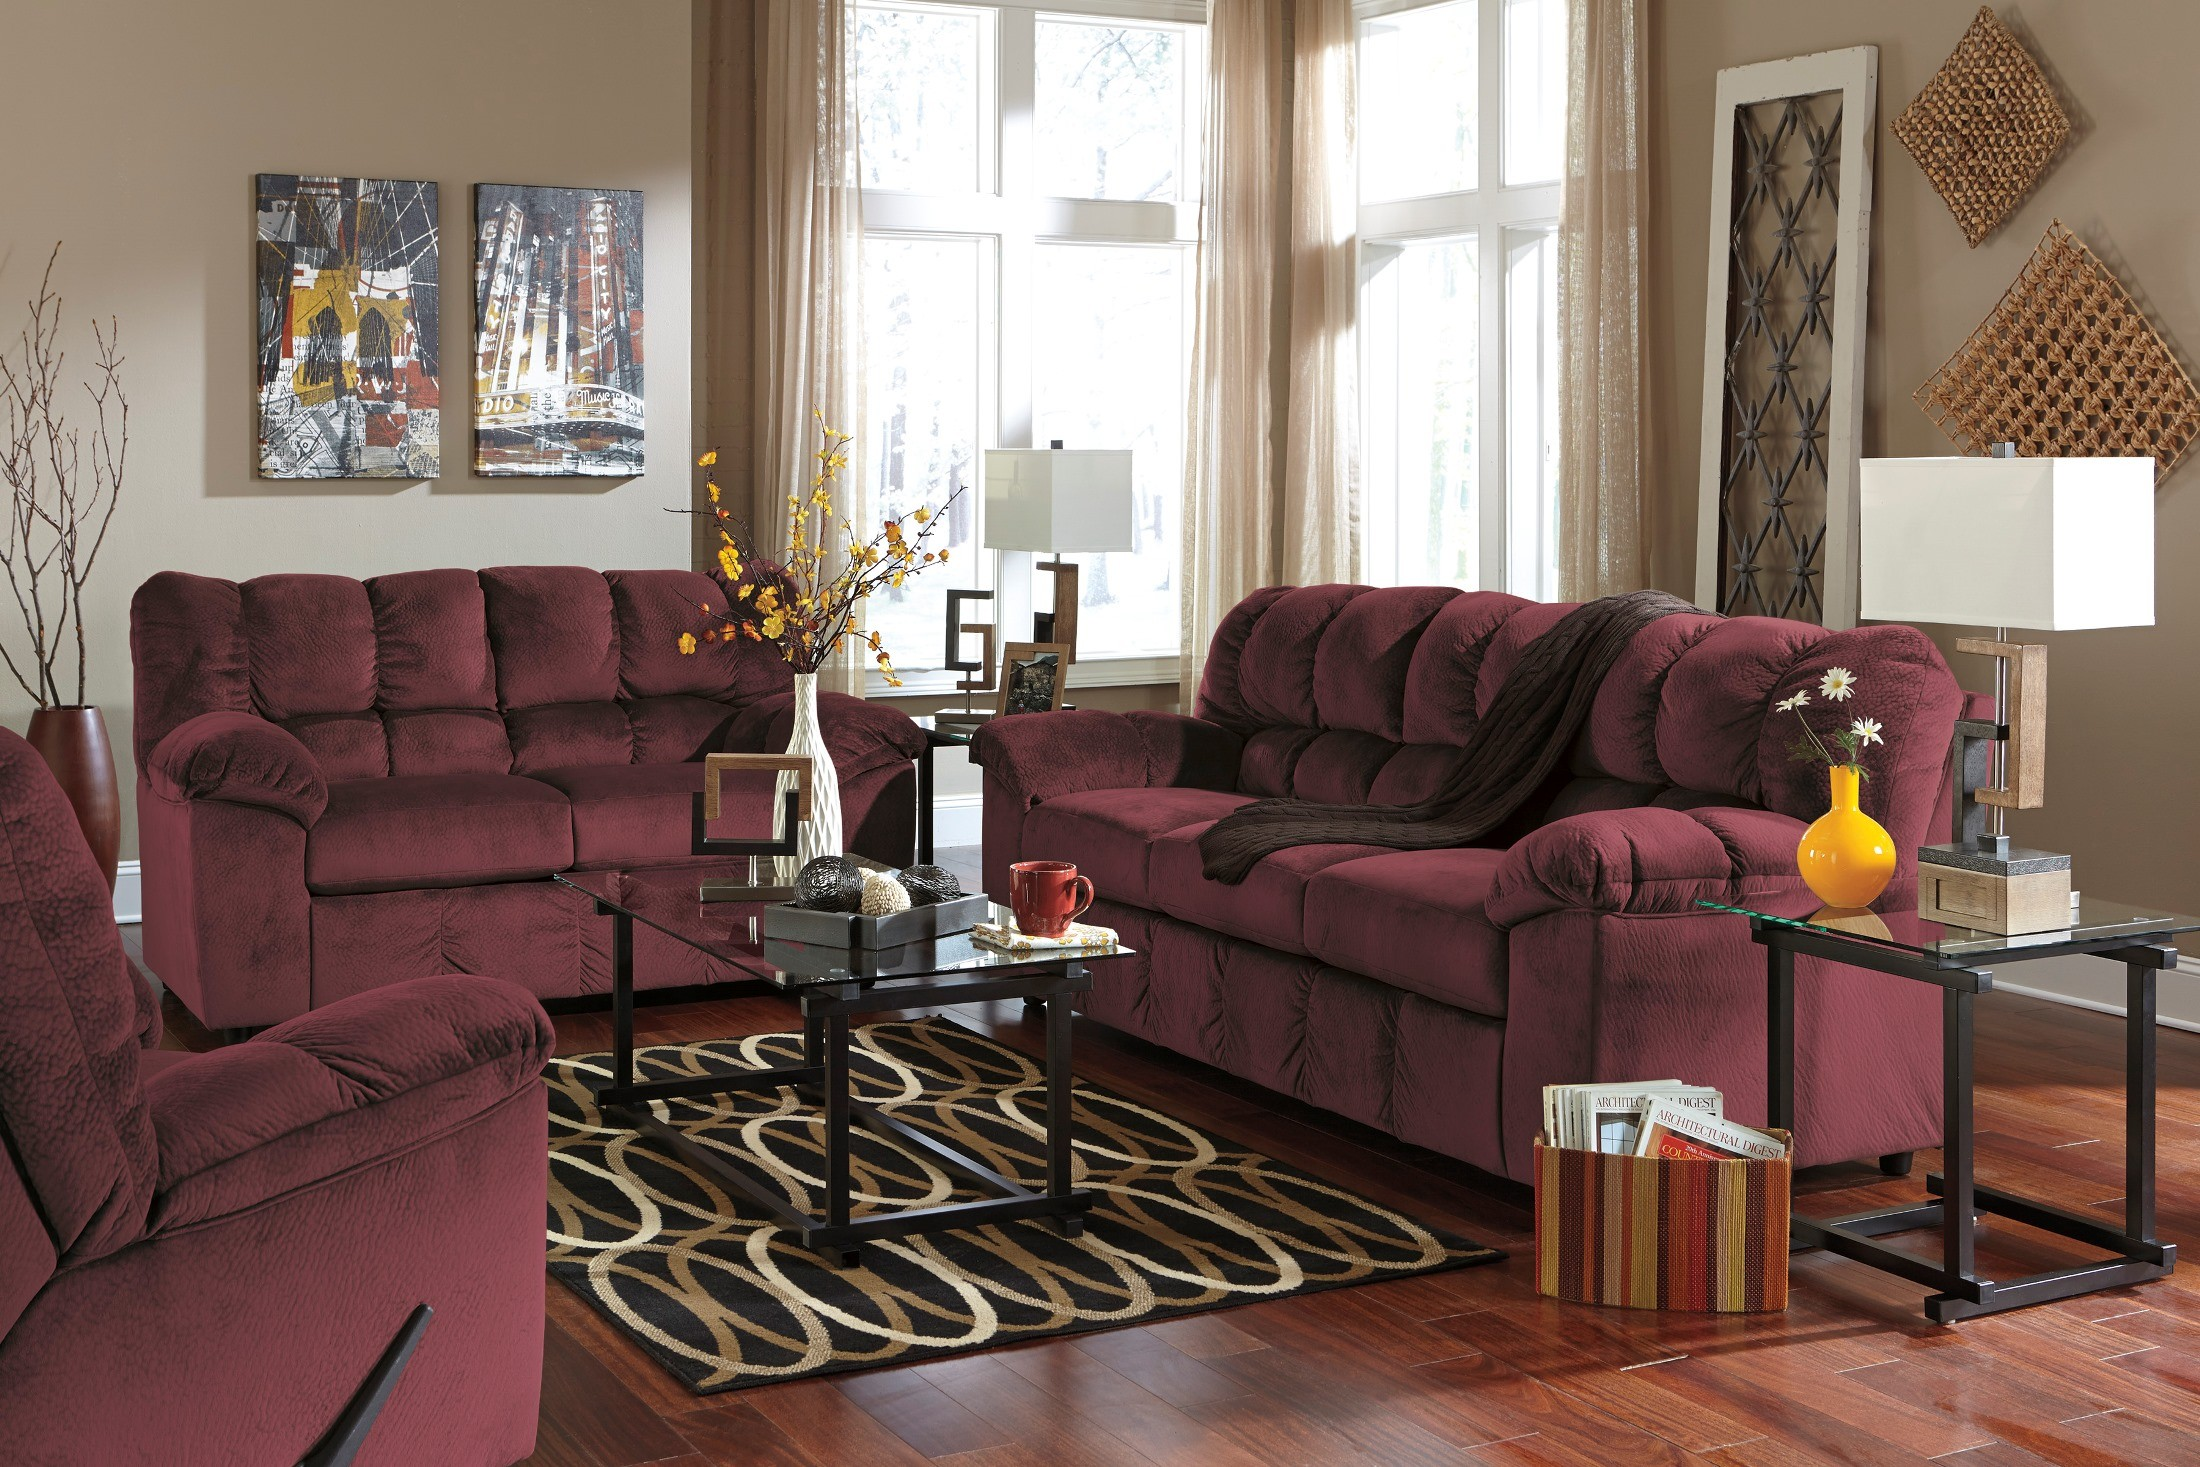 julson burgundy living room set from 26602 38 35 82781